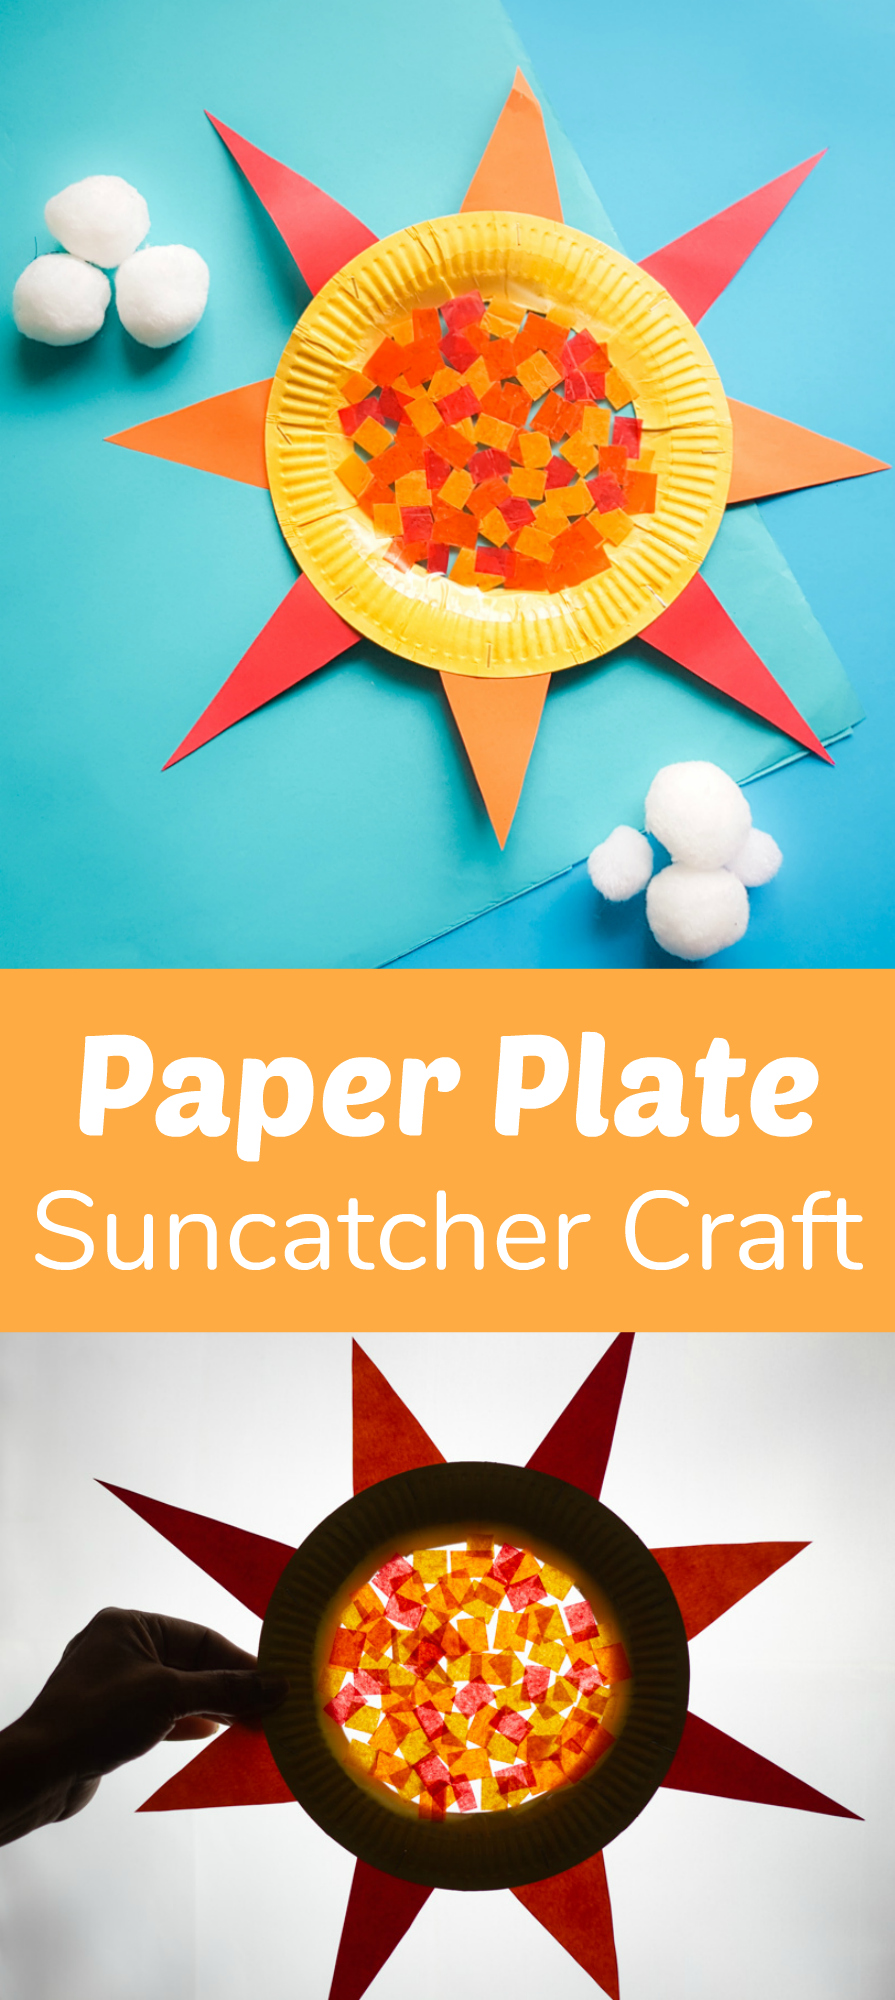 Cute Paper Plate Suncatcher Craft for Kids